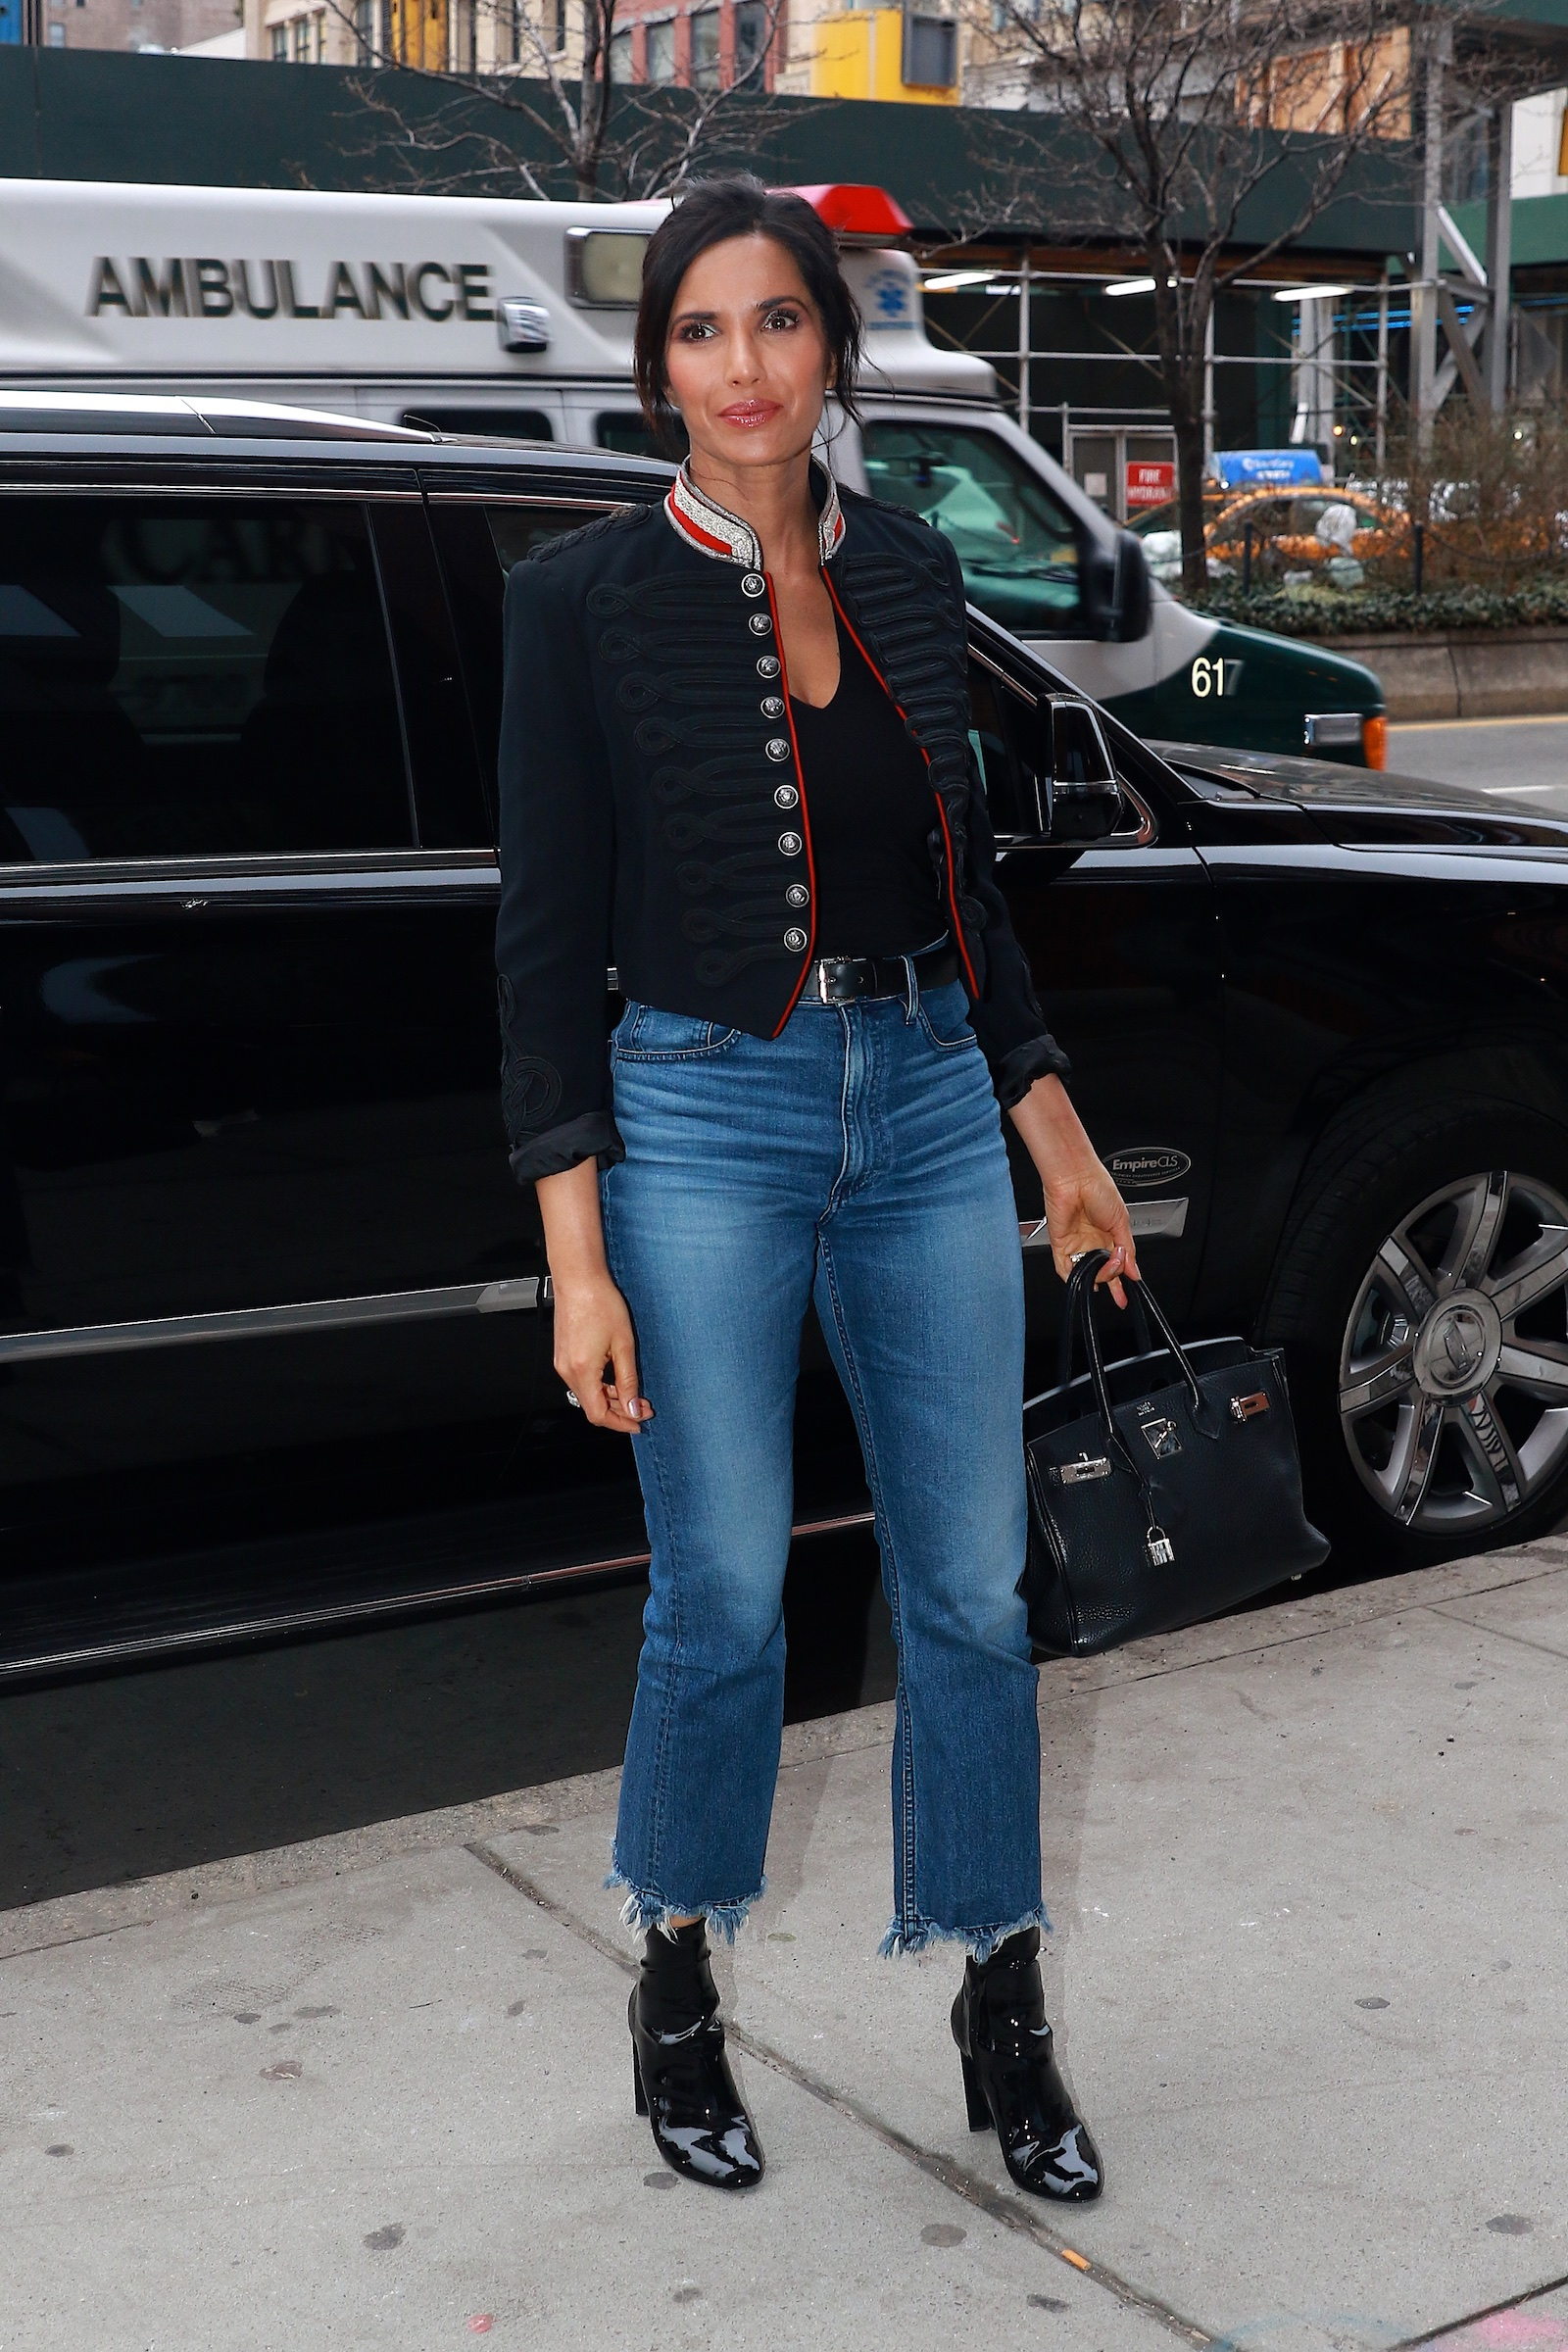 Padma Lakshmi returns home after appearing on AOL Build this evening in NYC <P> Pictured: Padma Lakshmi <B>Ref: SPL1669729  120318  </B><BR/> Picture by: Splash News<BR/> </P><P> <B>Splash News and Pictures</B><BR/> Los Angeles:	310-821-2666<BR/> New York:	212-619-2666<BR/> London:	870-934-2666<BR/> <span id=